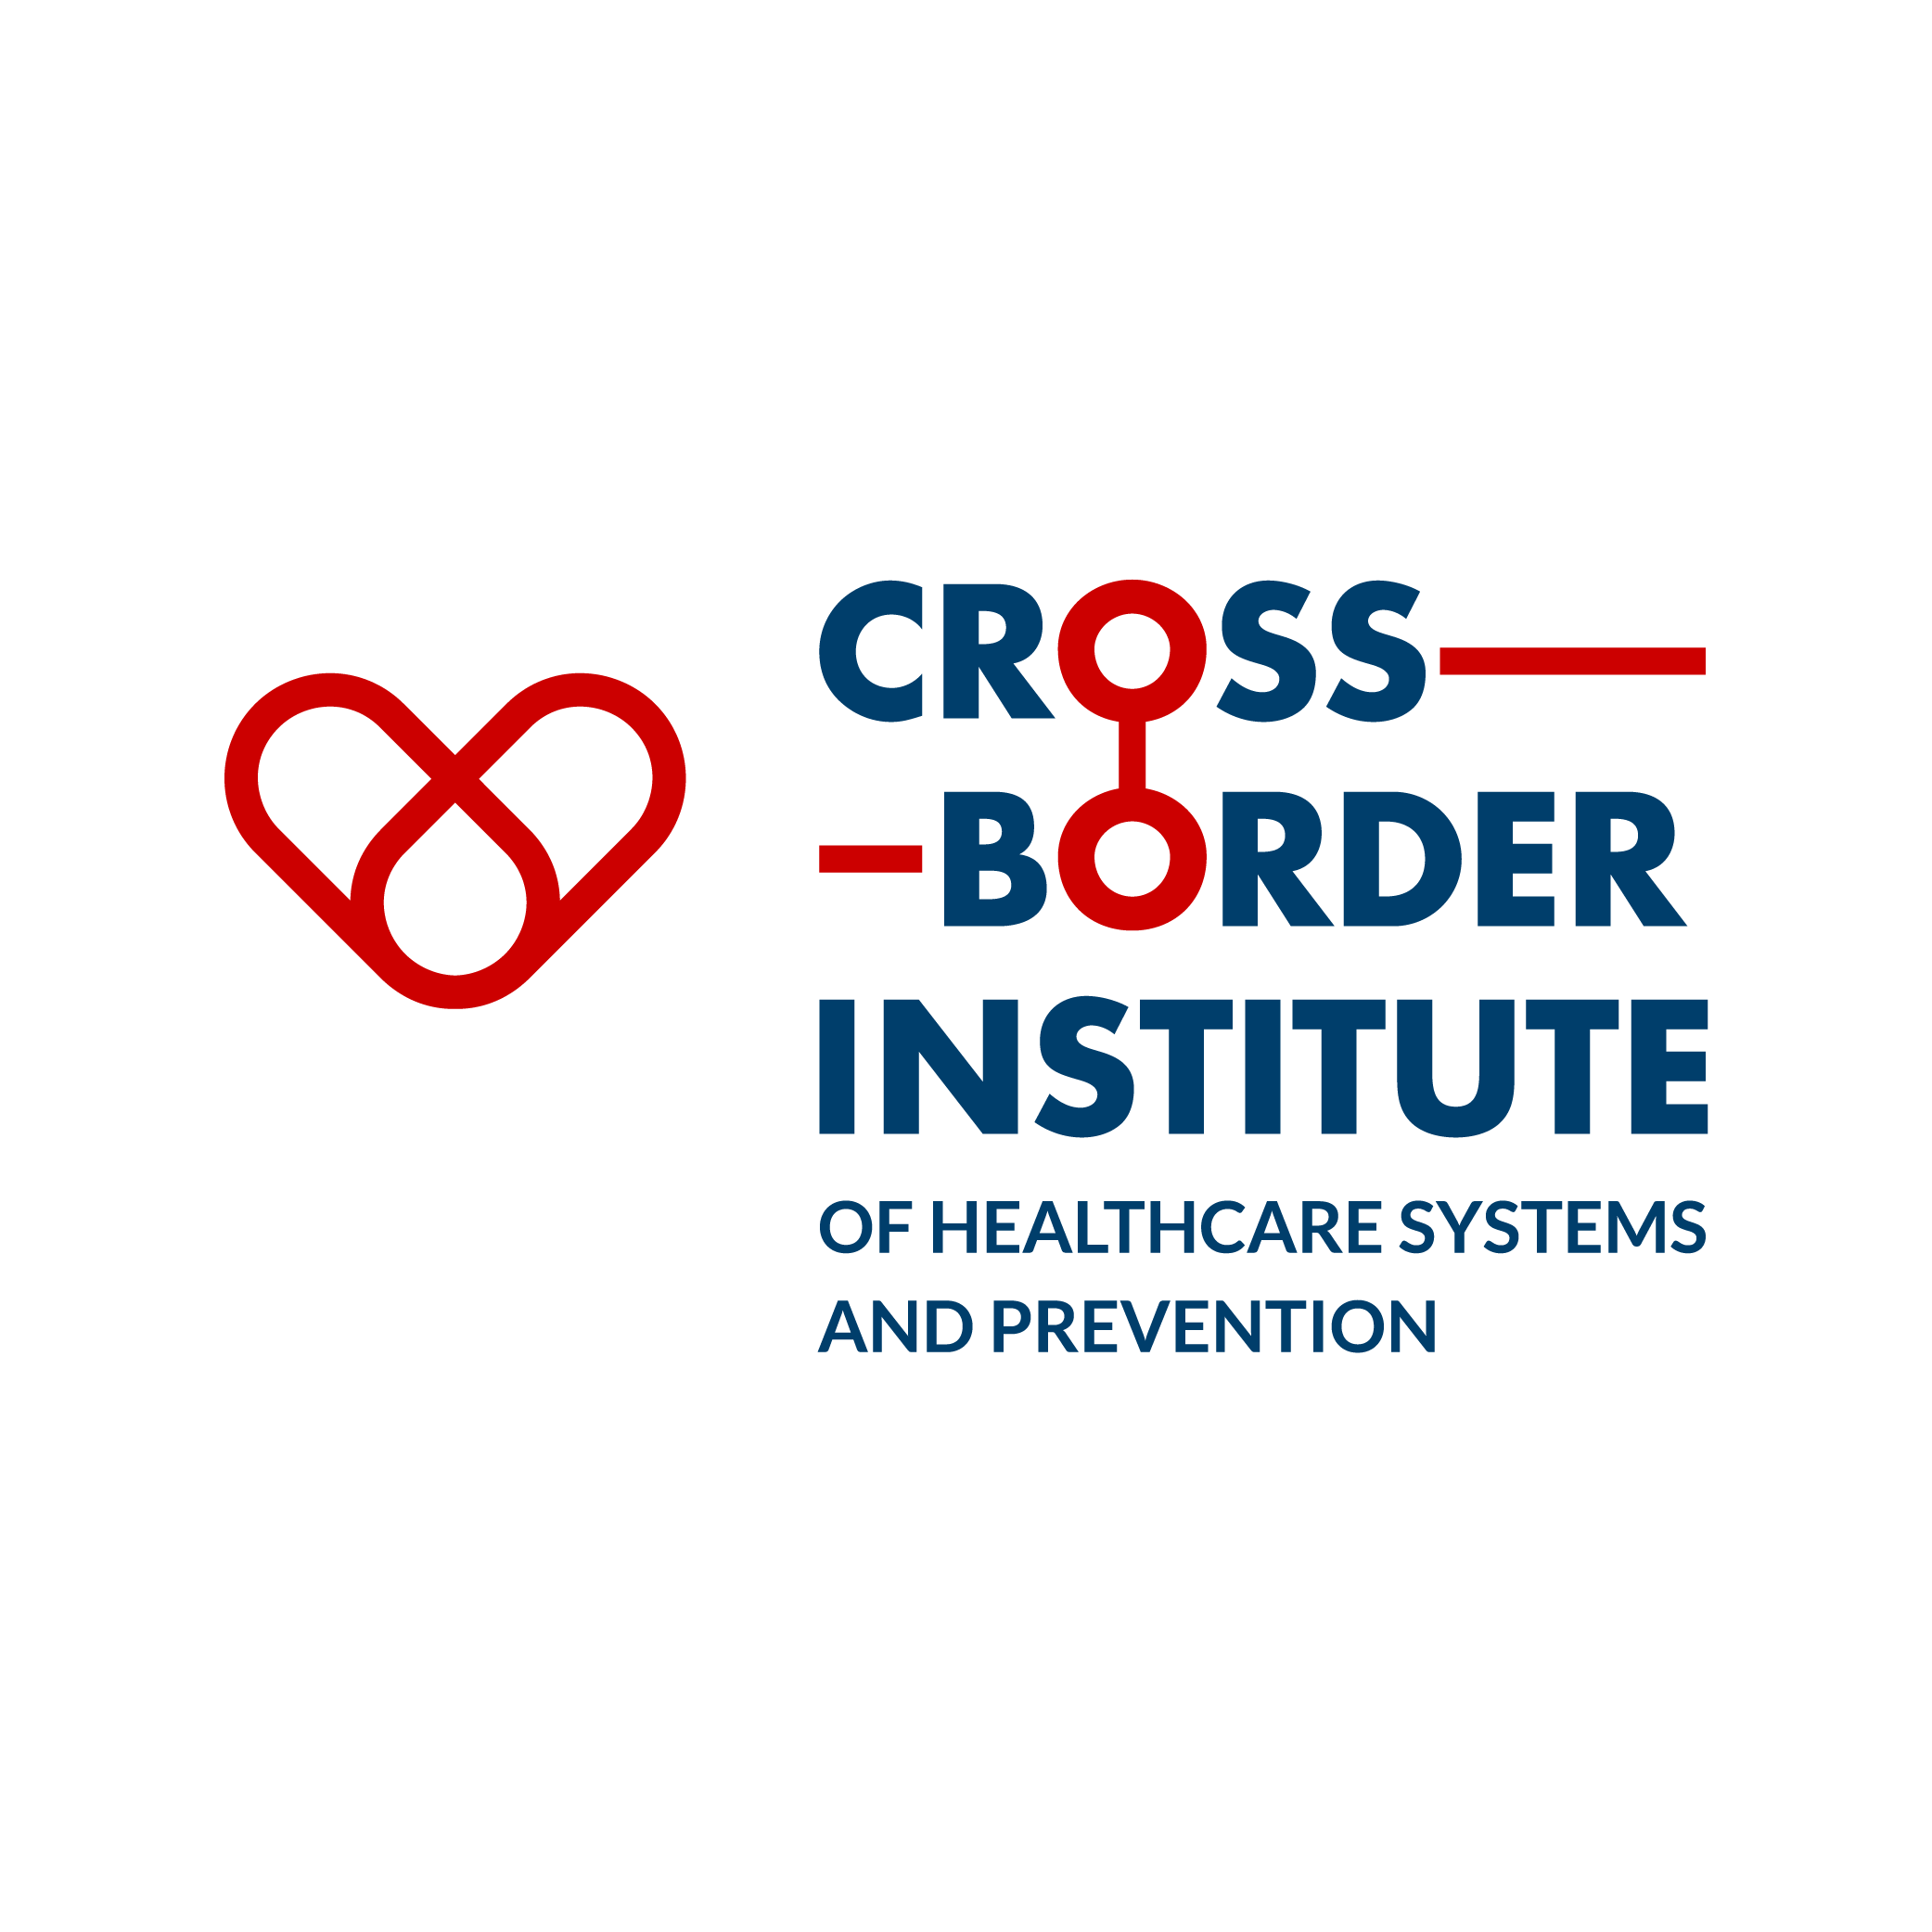 Cross-border Institute of Healthcare Systems and Prevention